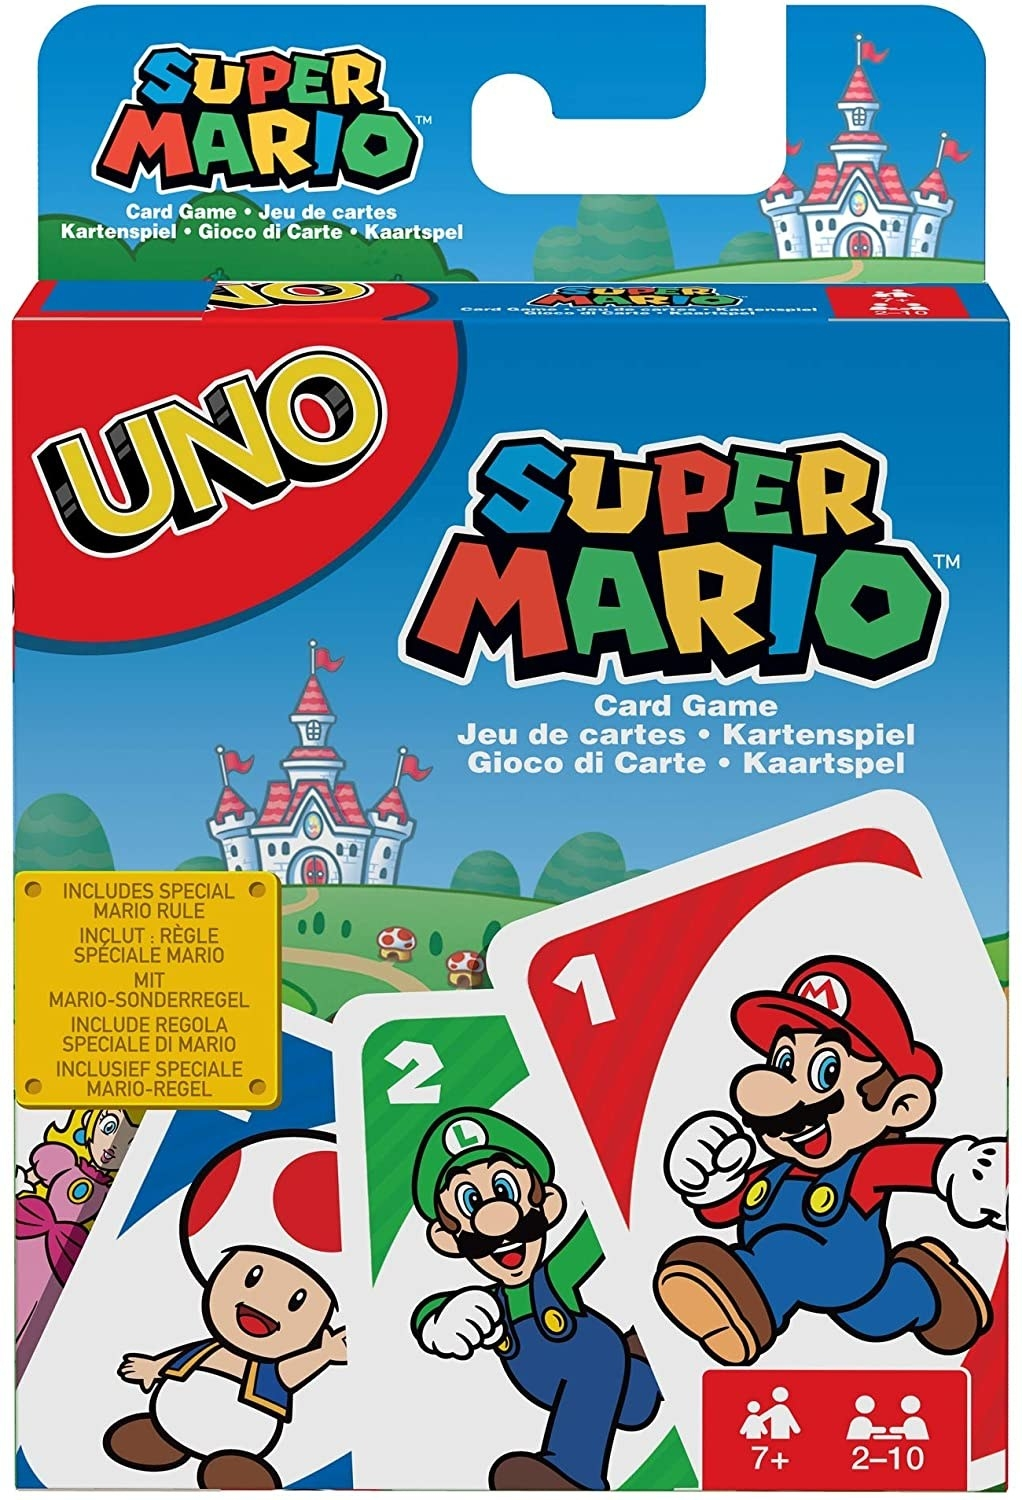 A pack of UNO cards